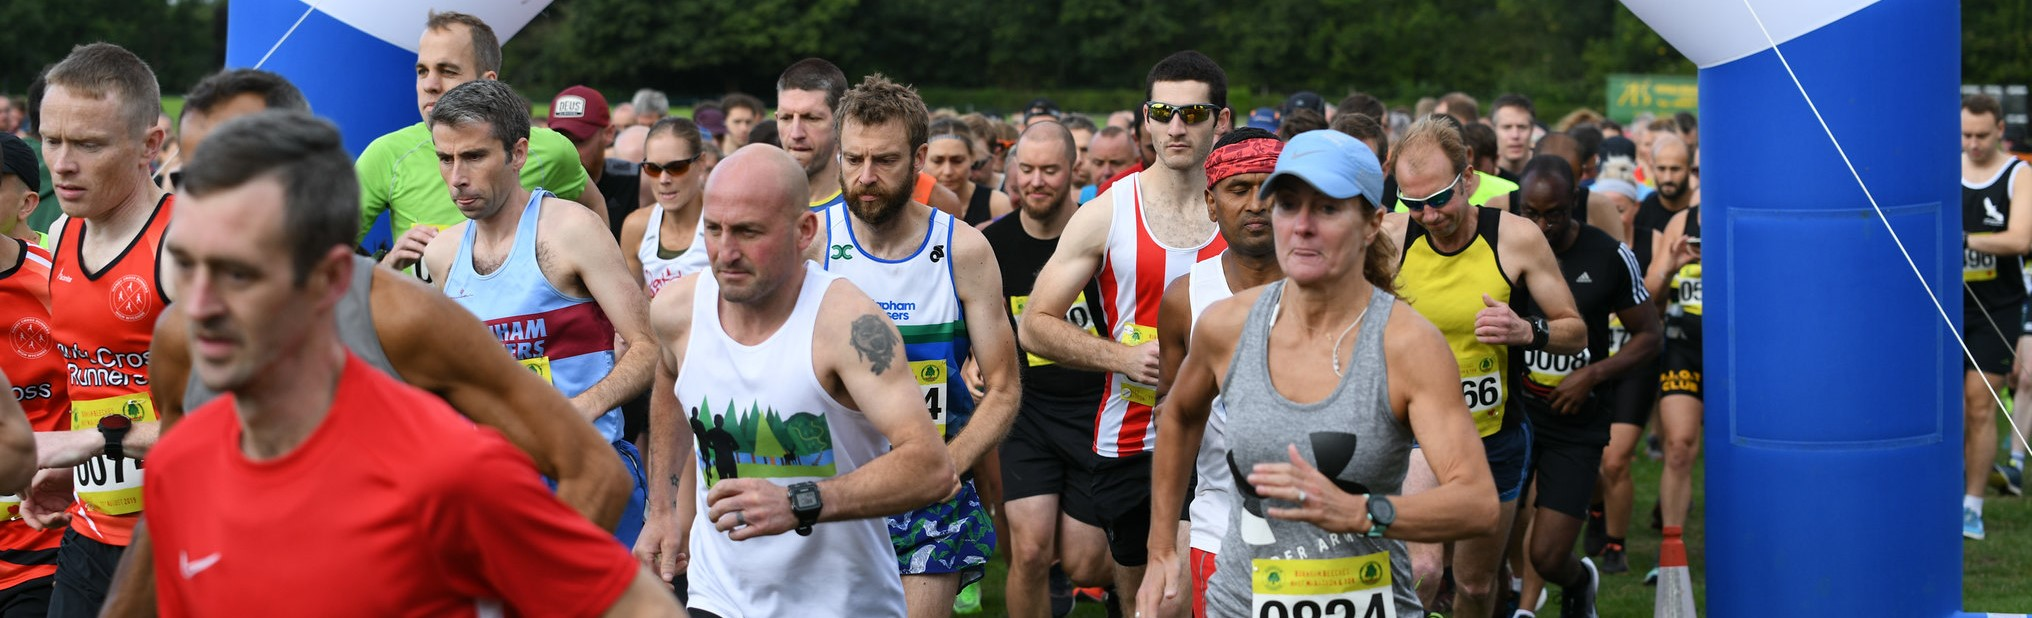 Burnham Beeches Half Marathon and 10K